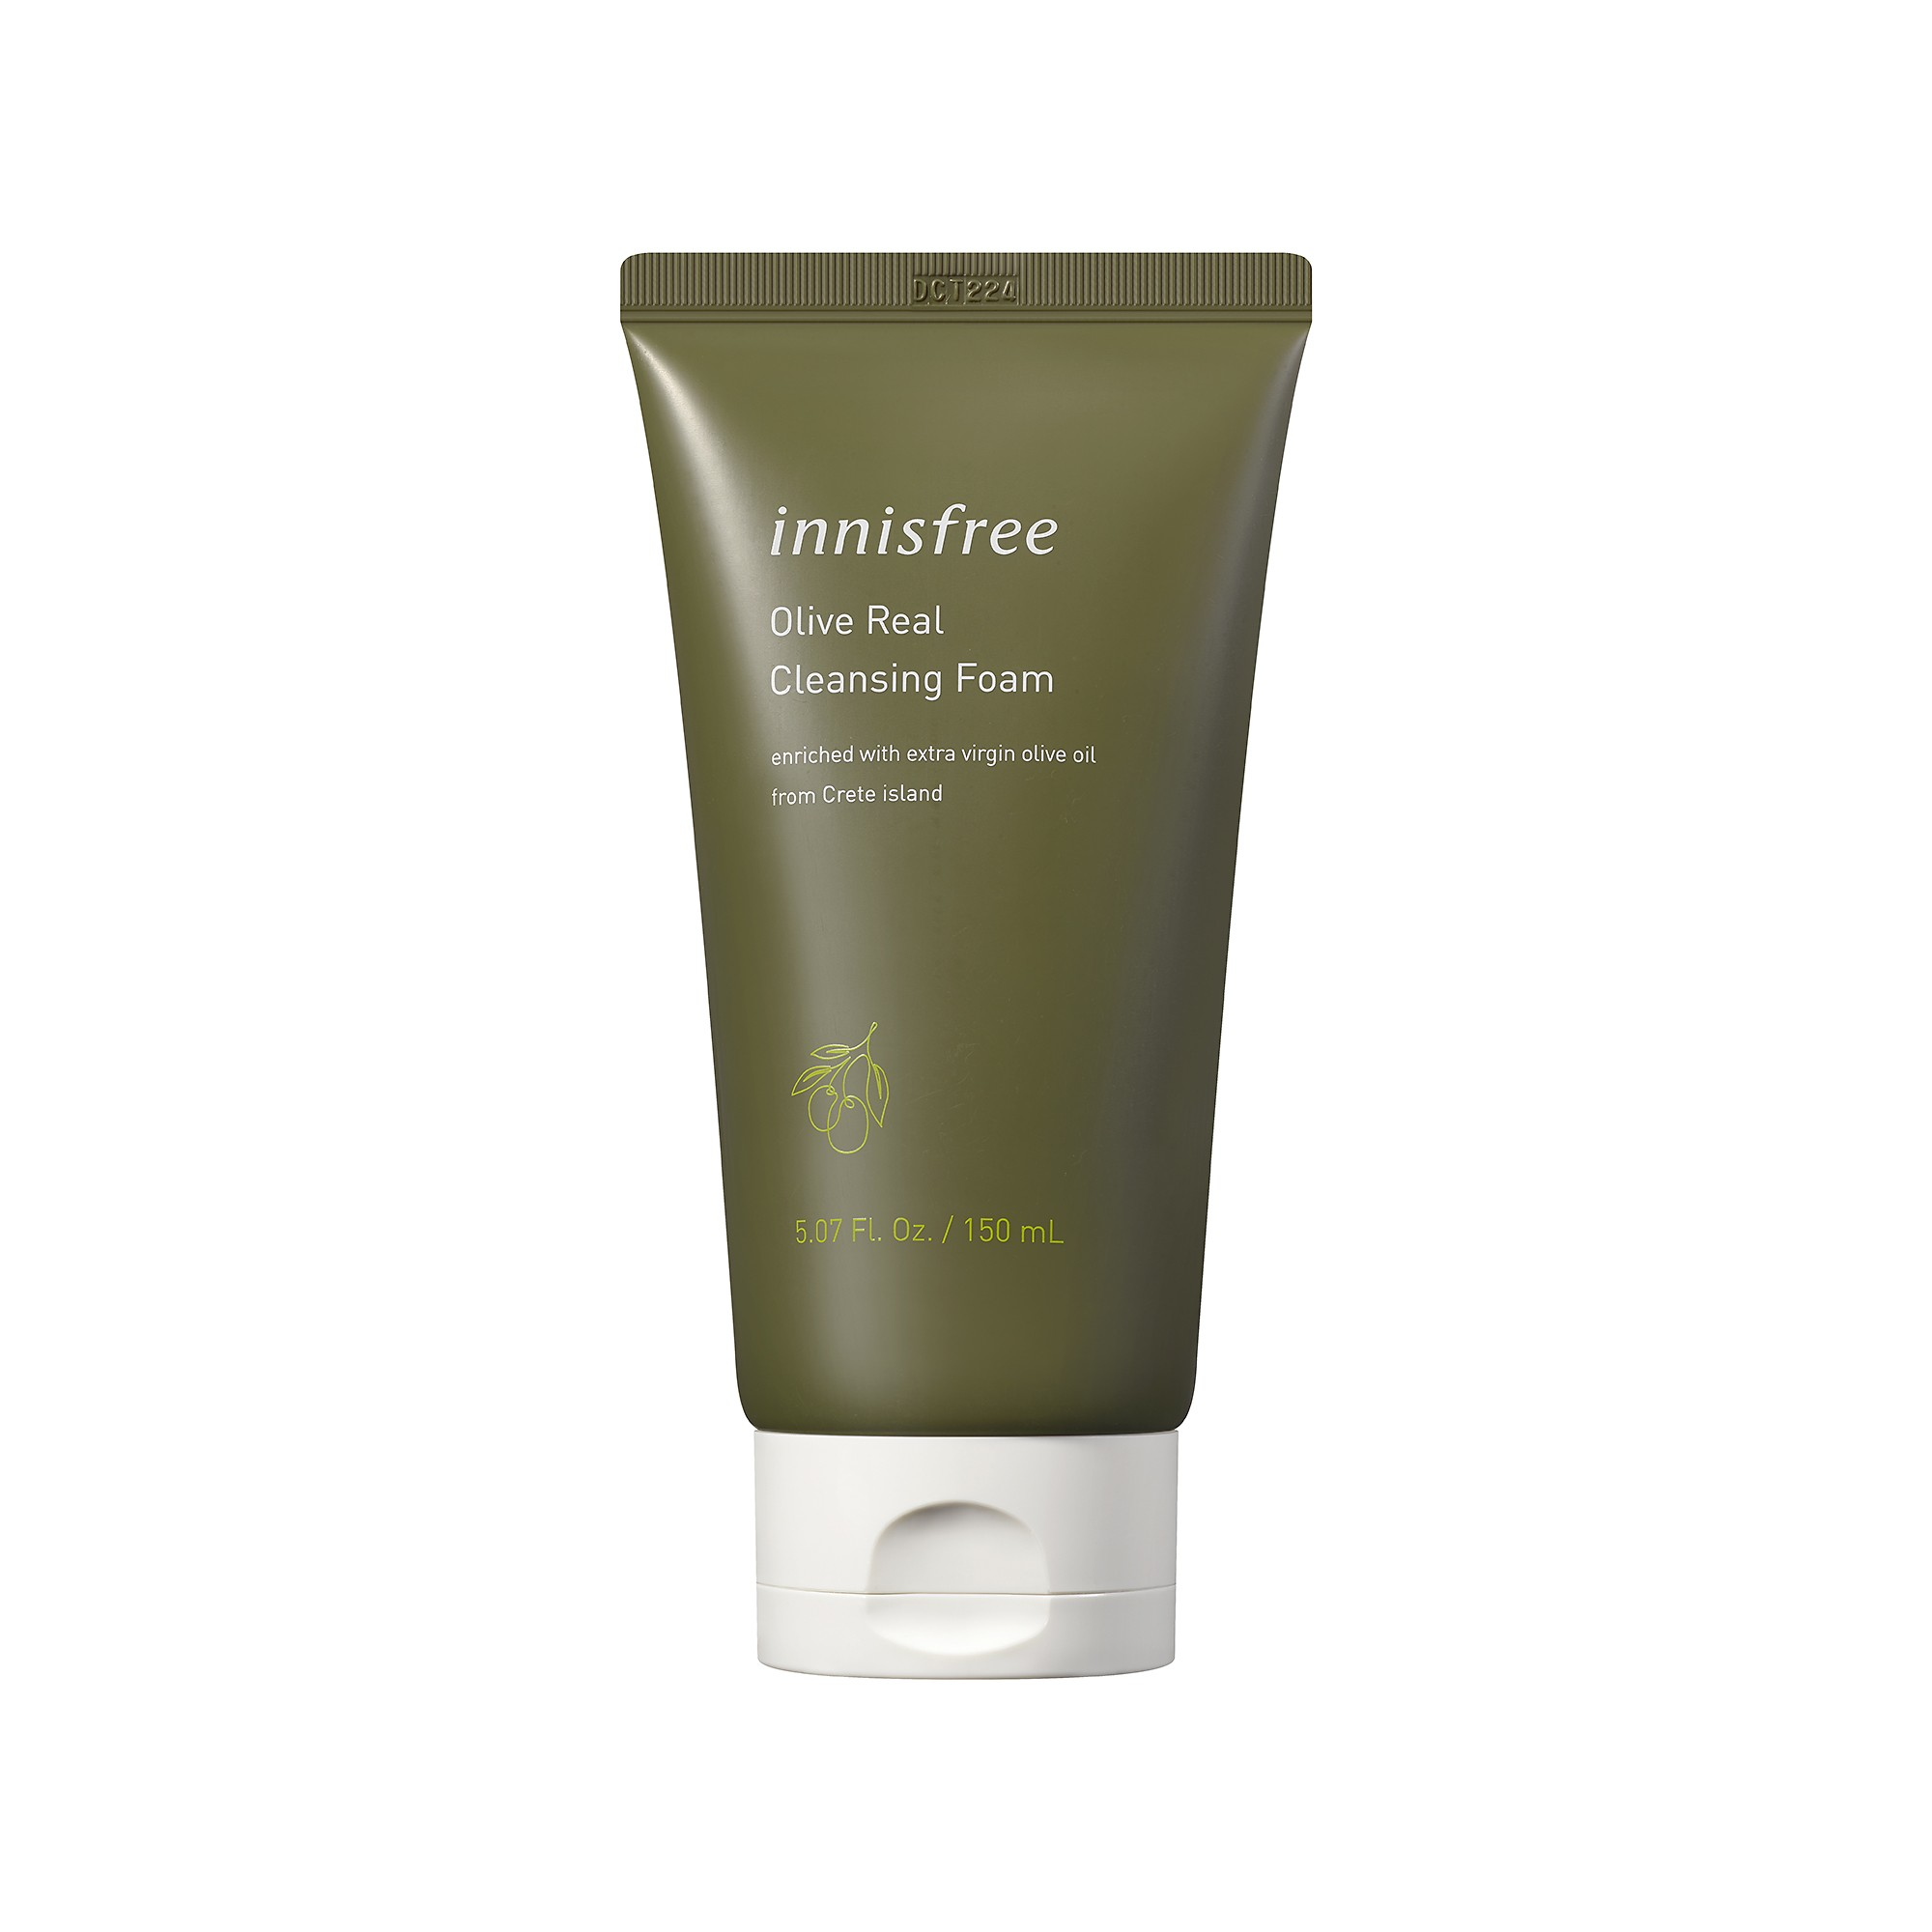 OLIVE REAL CLEANSING FOAM 150mL